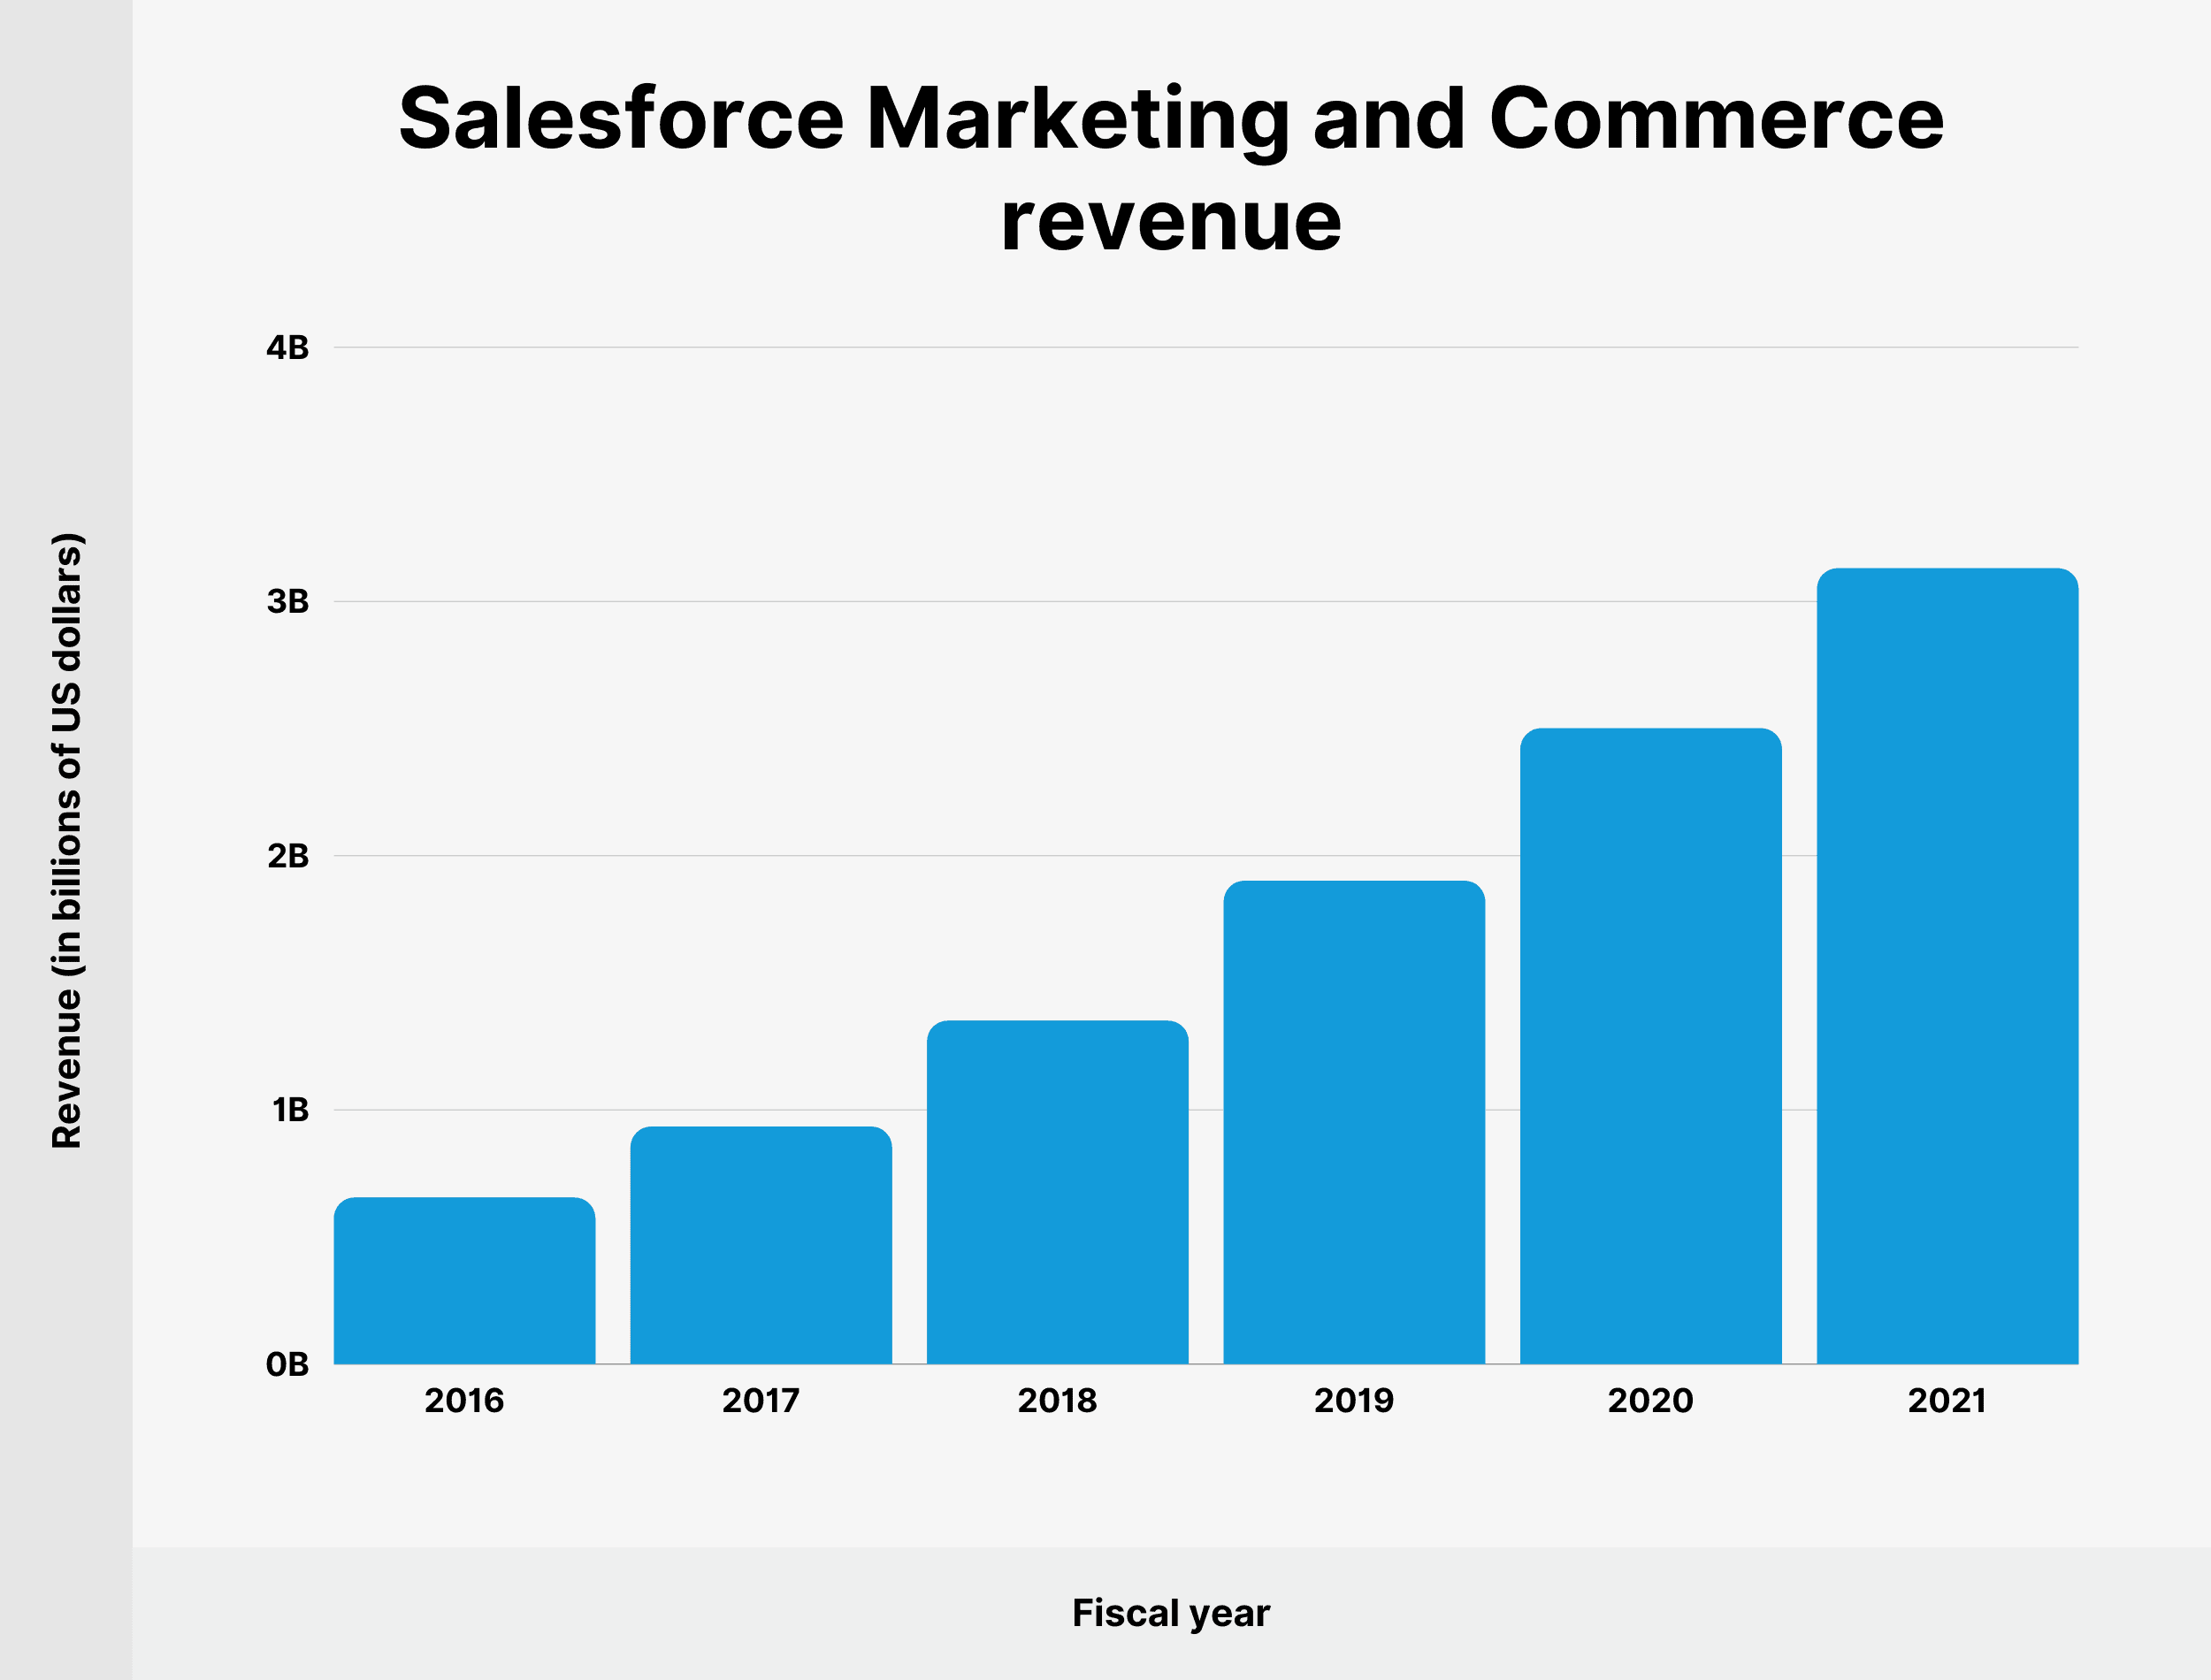 Salesforce Marketing and Commerce revenue